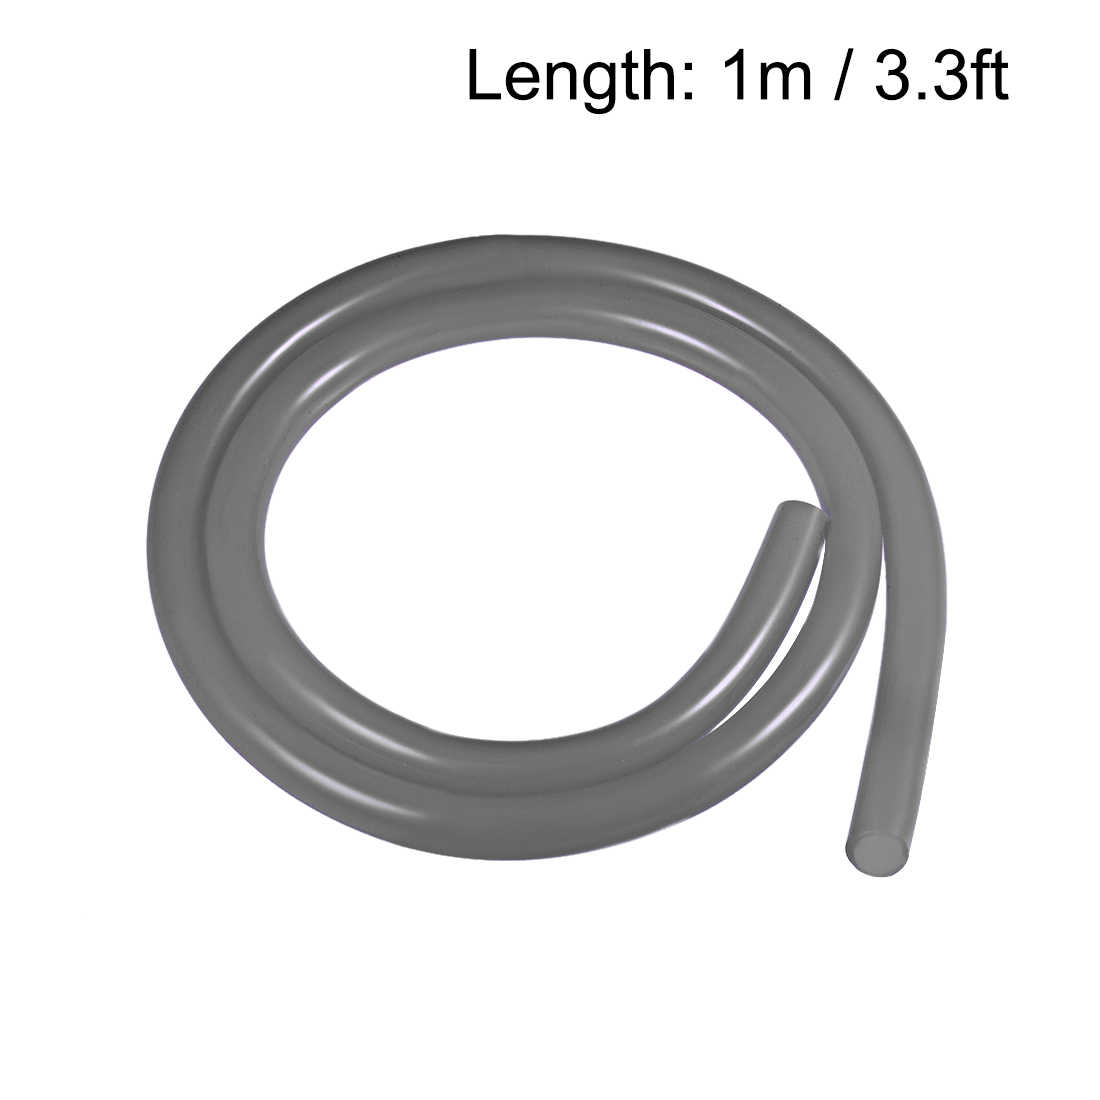 sourcing map Silicone Tubing 2mm ID x 6mm OD 1m Flexible Silicone Rubber Tube Air Hose Water Pipe for Pump Transfer Clear